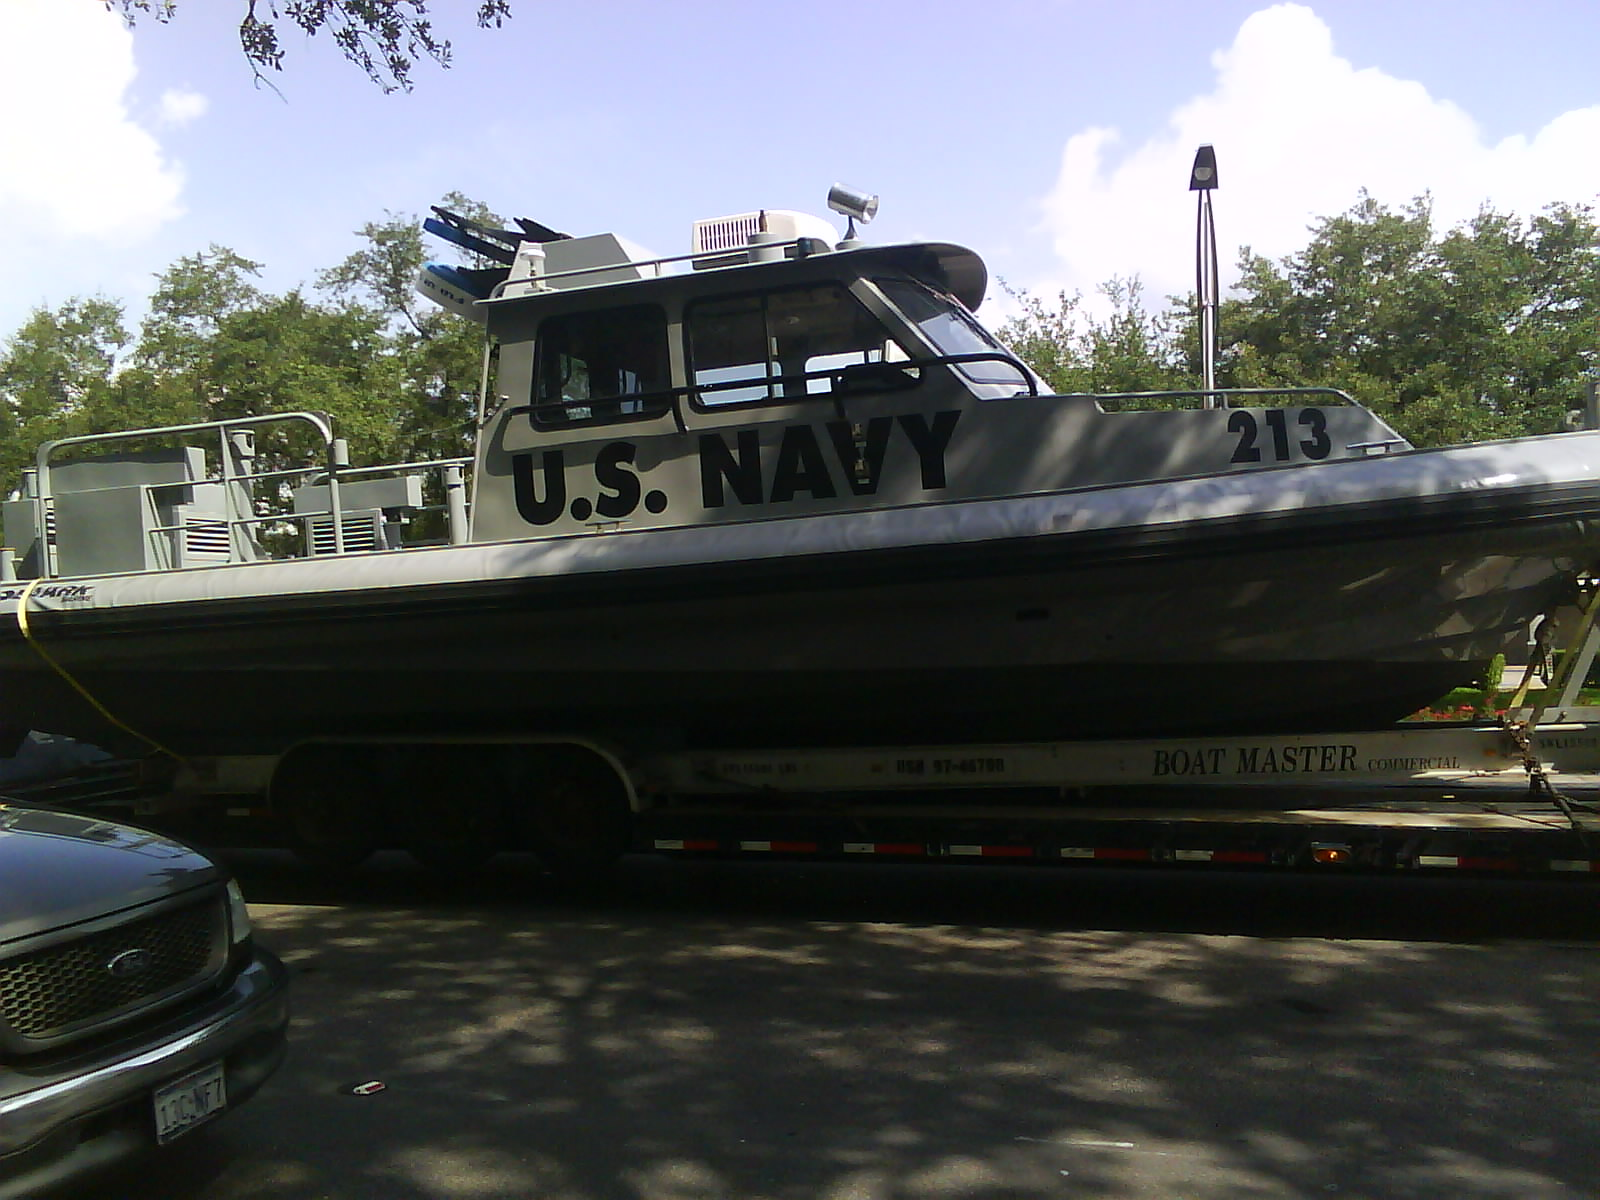 Navy River Patrol Boats http://drdivo.com/category/river-patrol-boat/